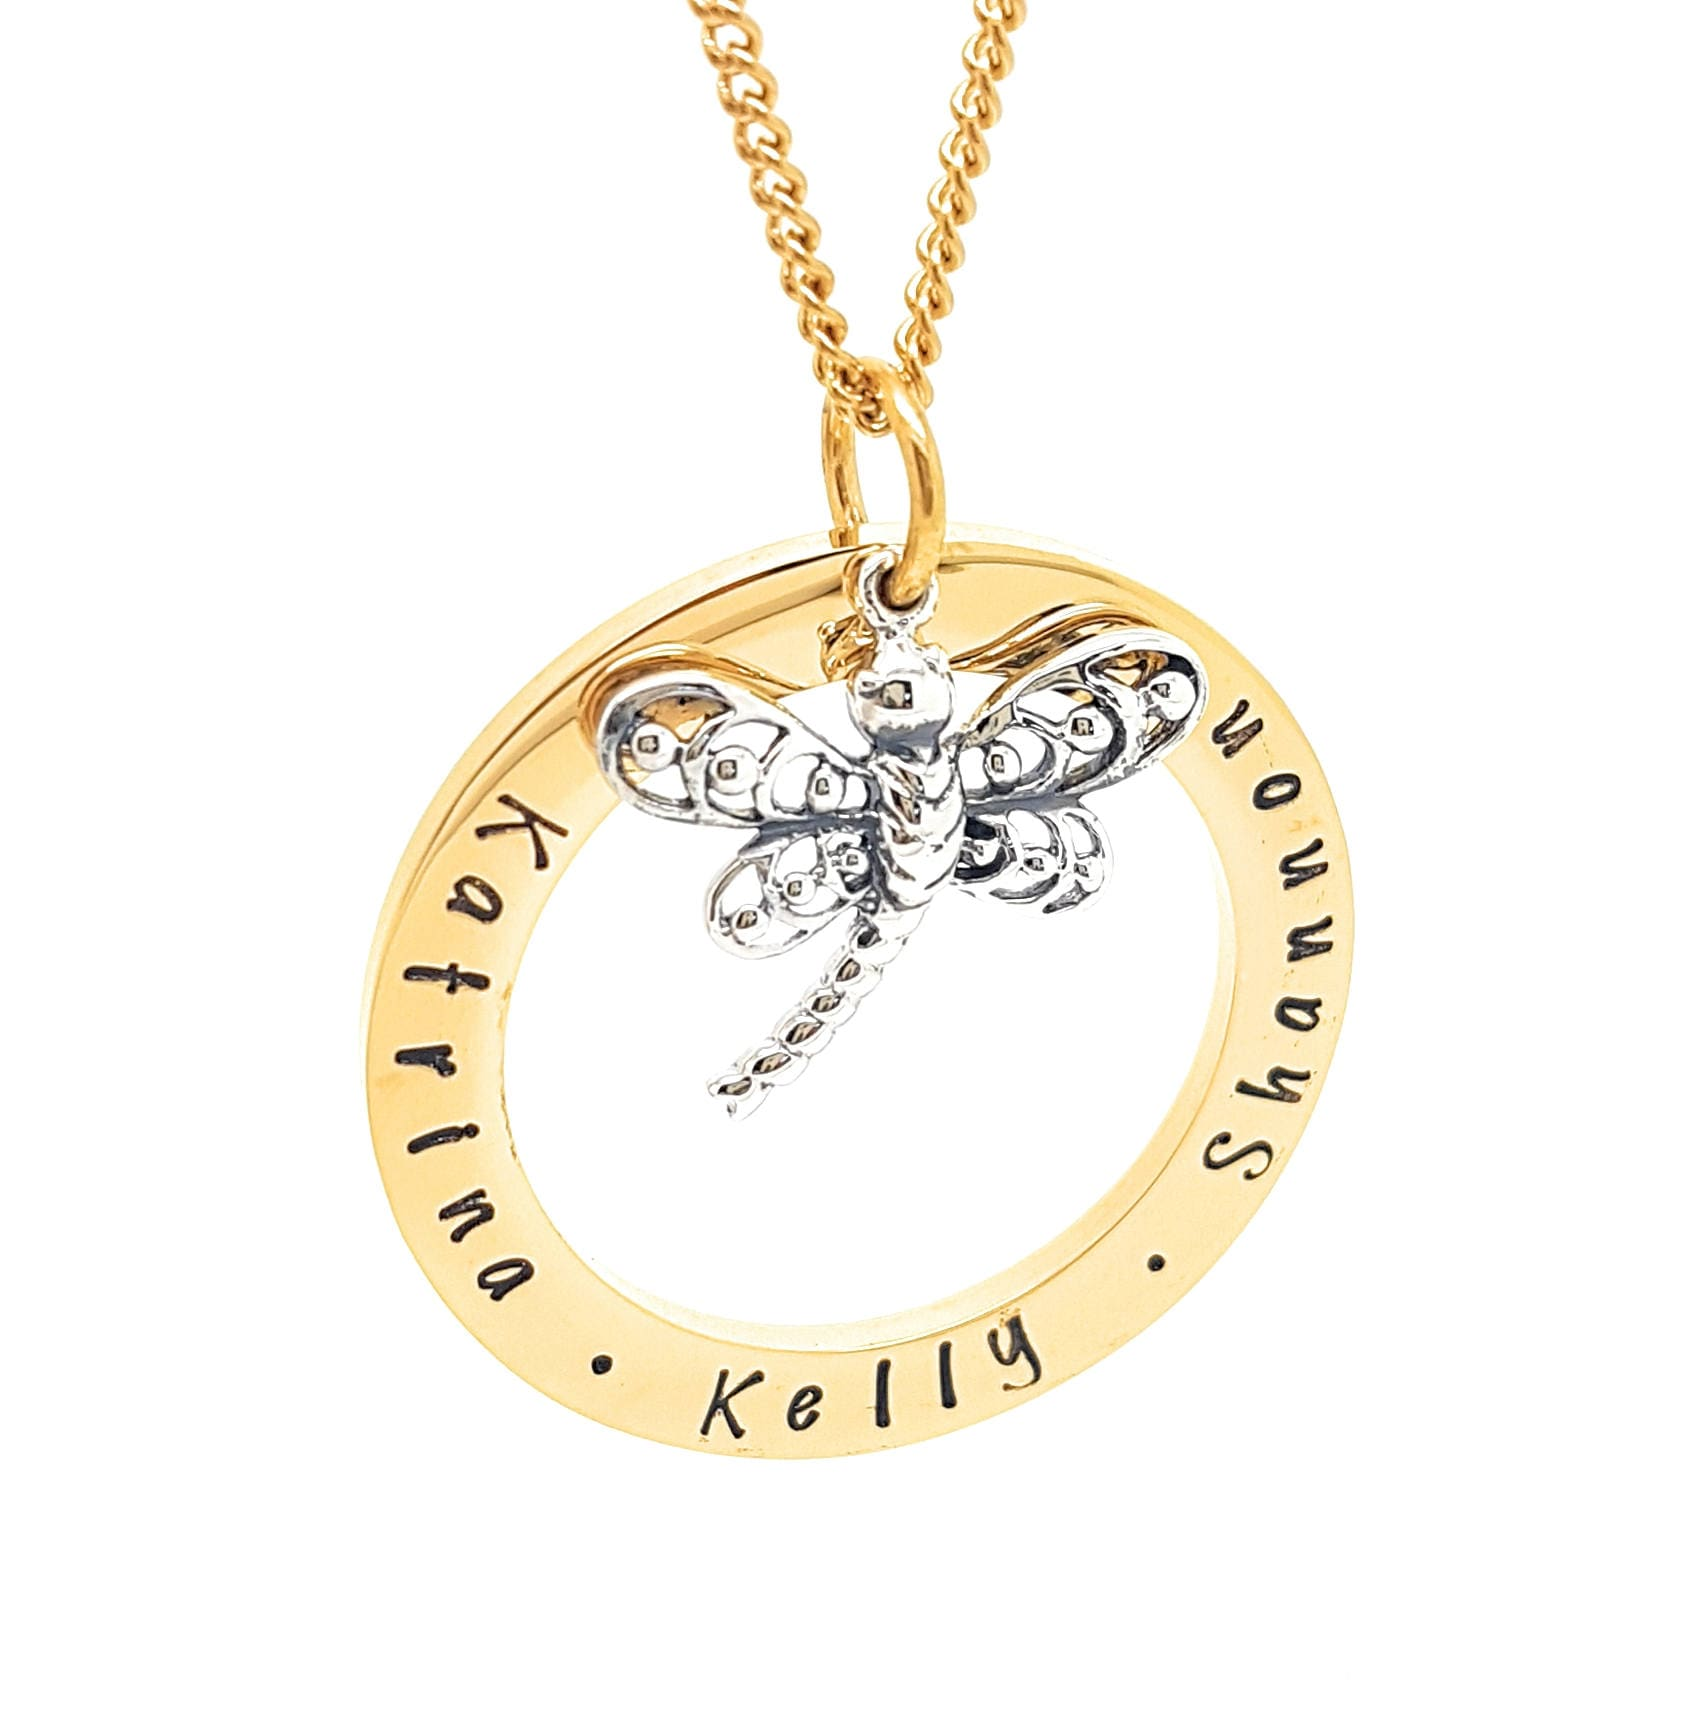 Personalised jewellery personalised necklace family necklace hand personalised jewellery personalised necklace family necklace hand stamped gold pendant with dragonfly charm friendship necklace unique aloadofball Choice Image